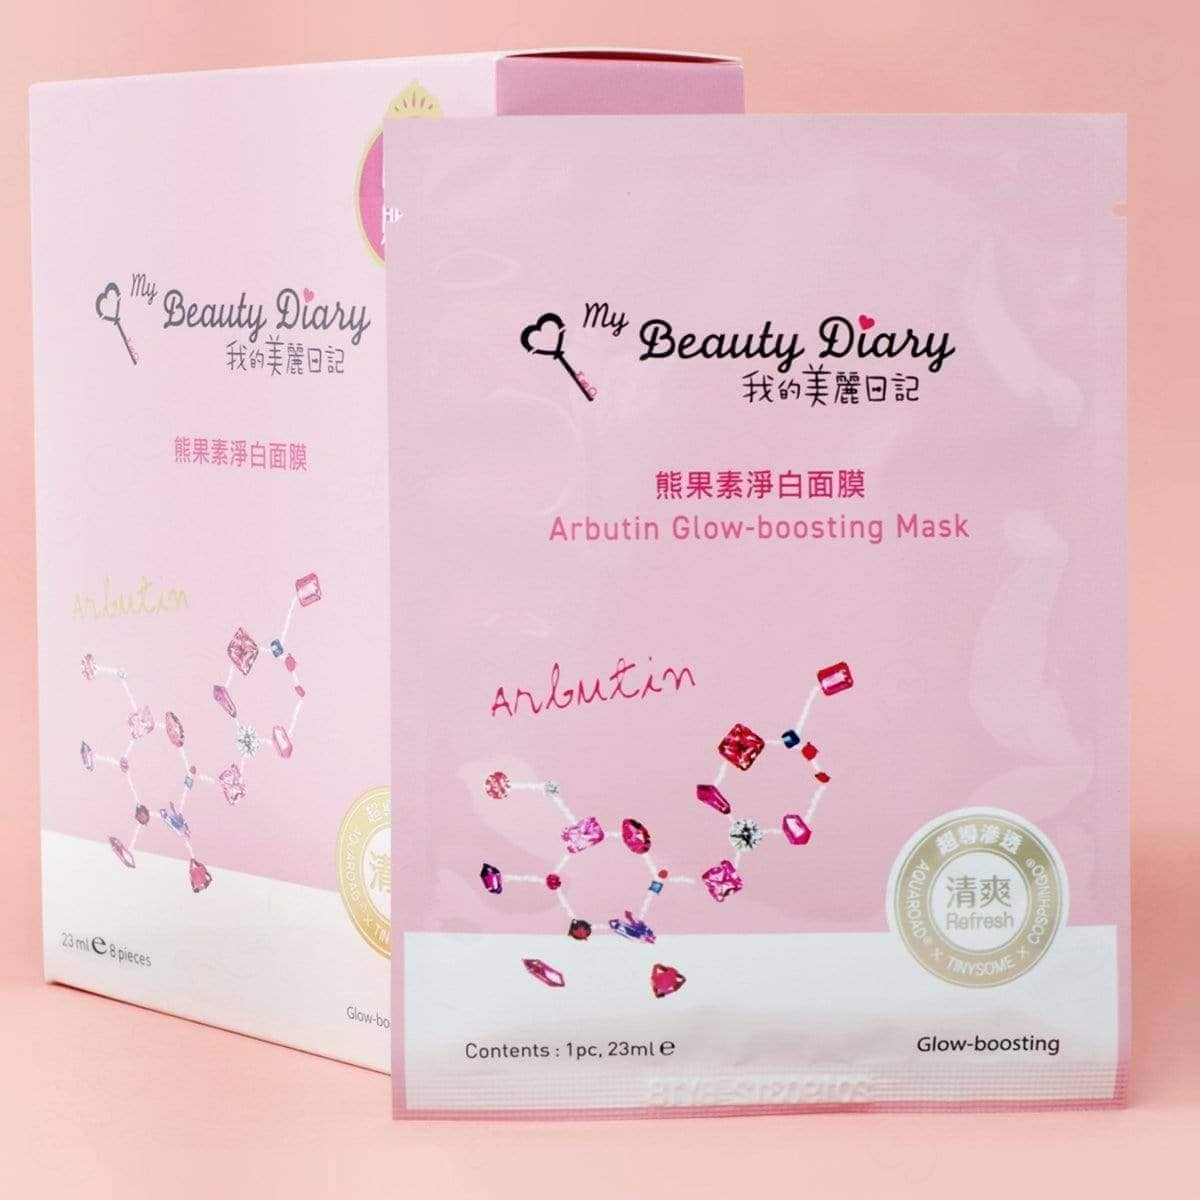 My Beauty Diary Arbutin Glow-boosting Sheet Mask